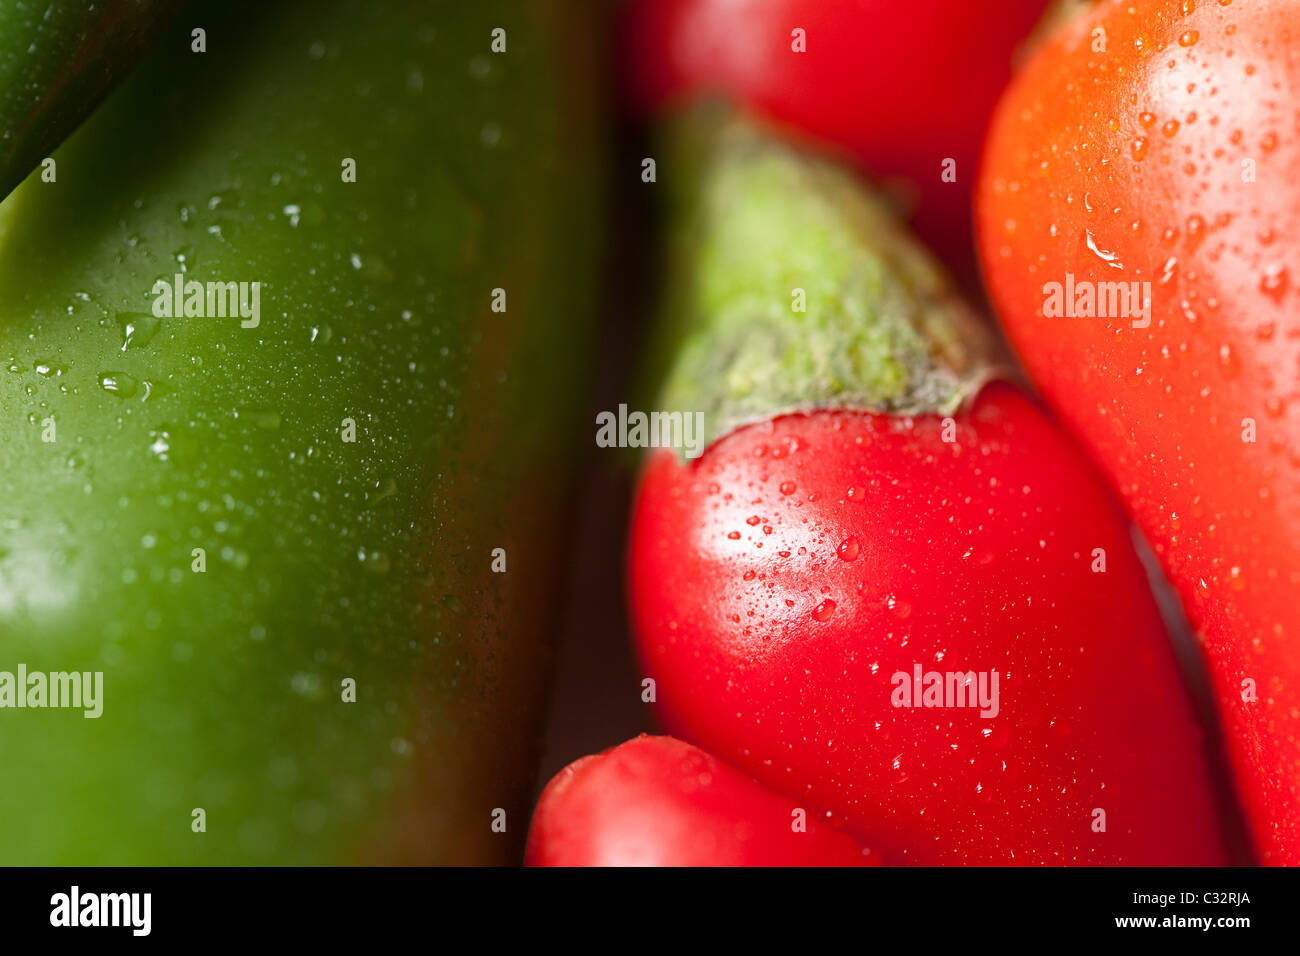 Green and red chilli peppers, full frame - Stock Image